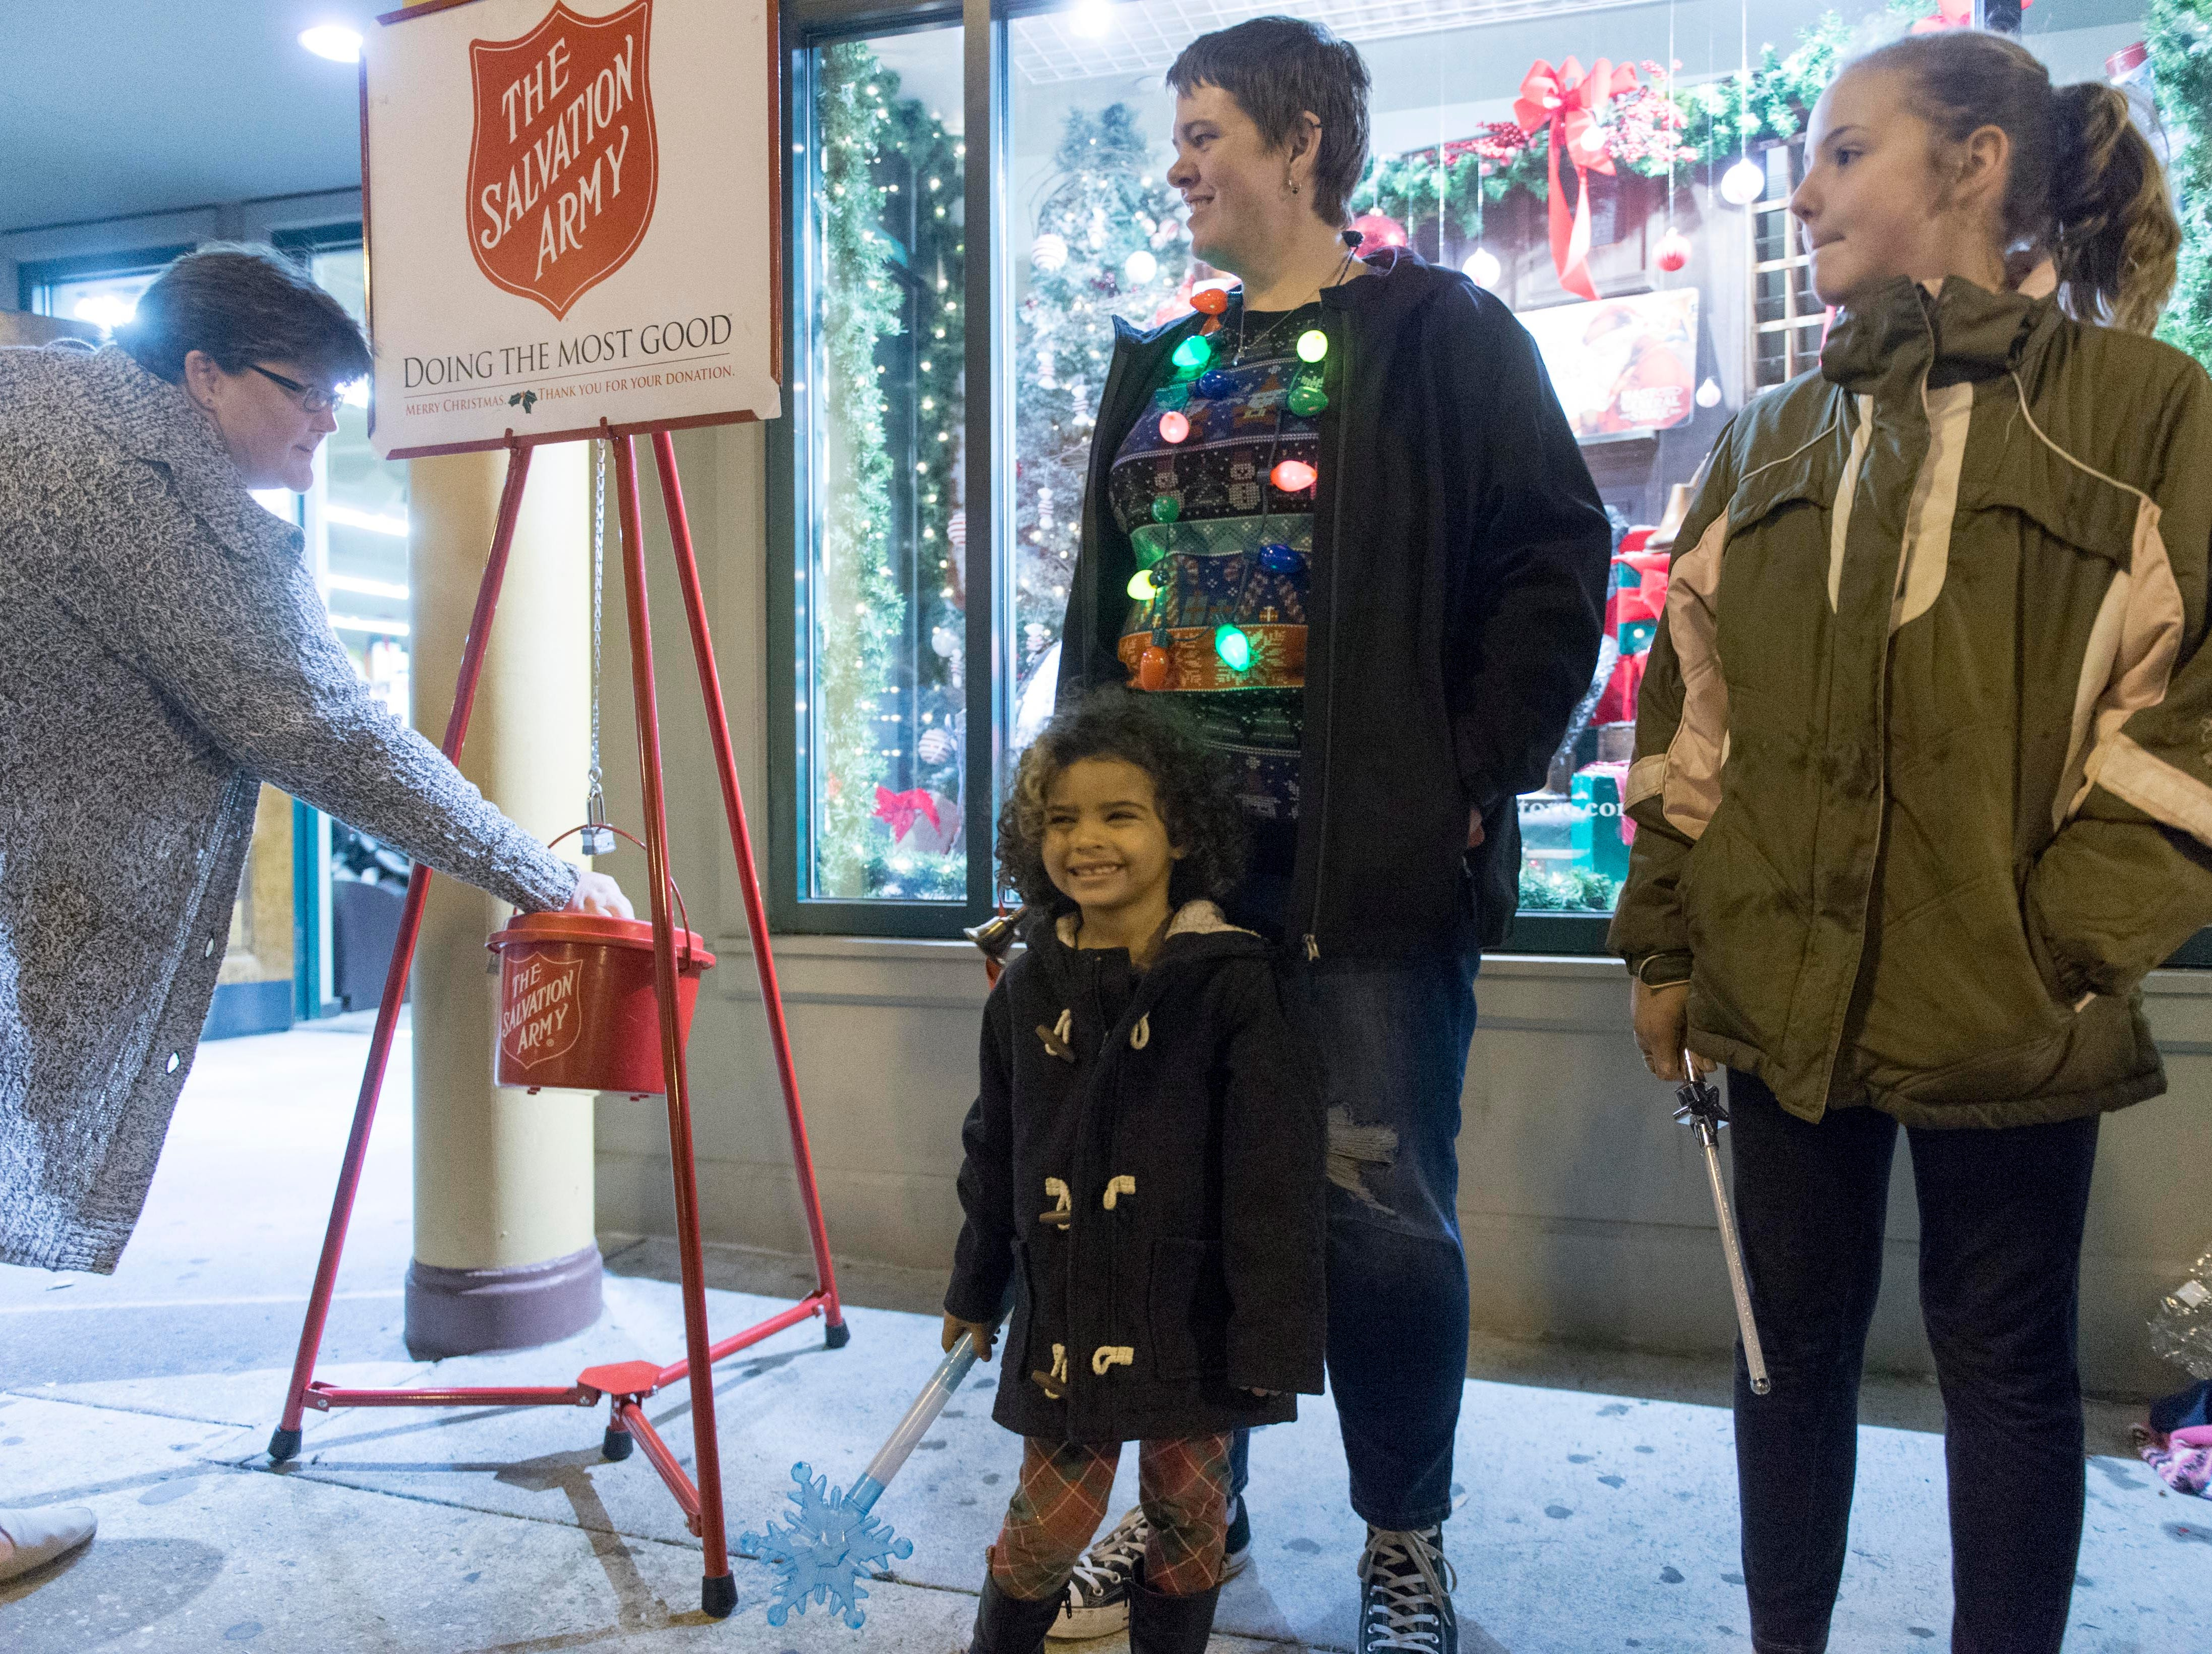 Ruth Ballinger and daughters Alixandria and McKinsey help collect donations for the Salvation Army in Downtown Knoxville on Friday, November 25, 2016 during the Christmas in the City kick-off celebration.